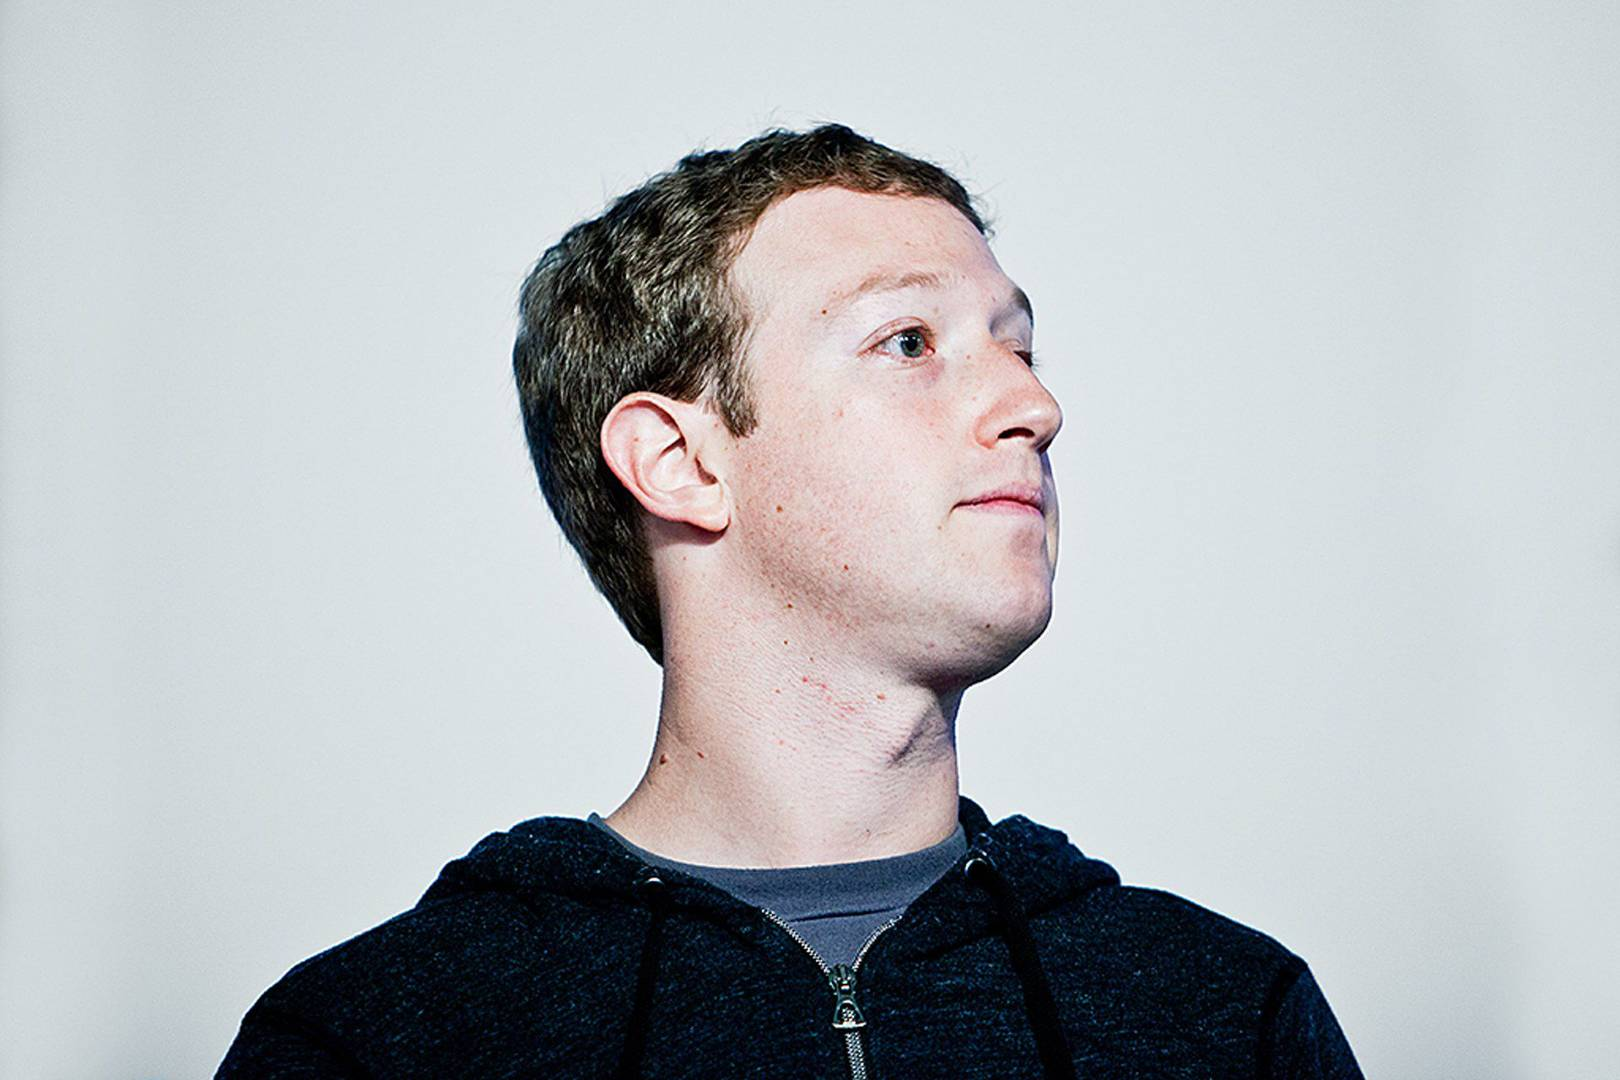 Facebook just fixed a massive data scraping issue it insisted was